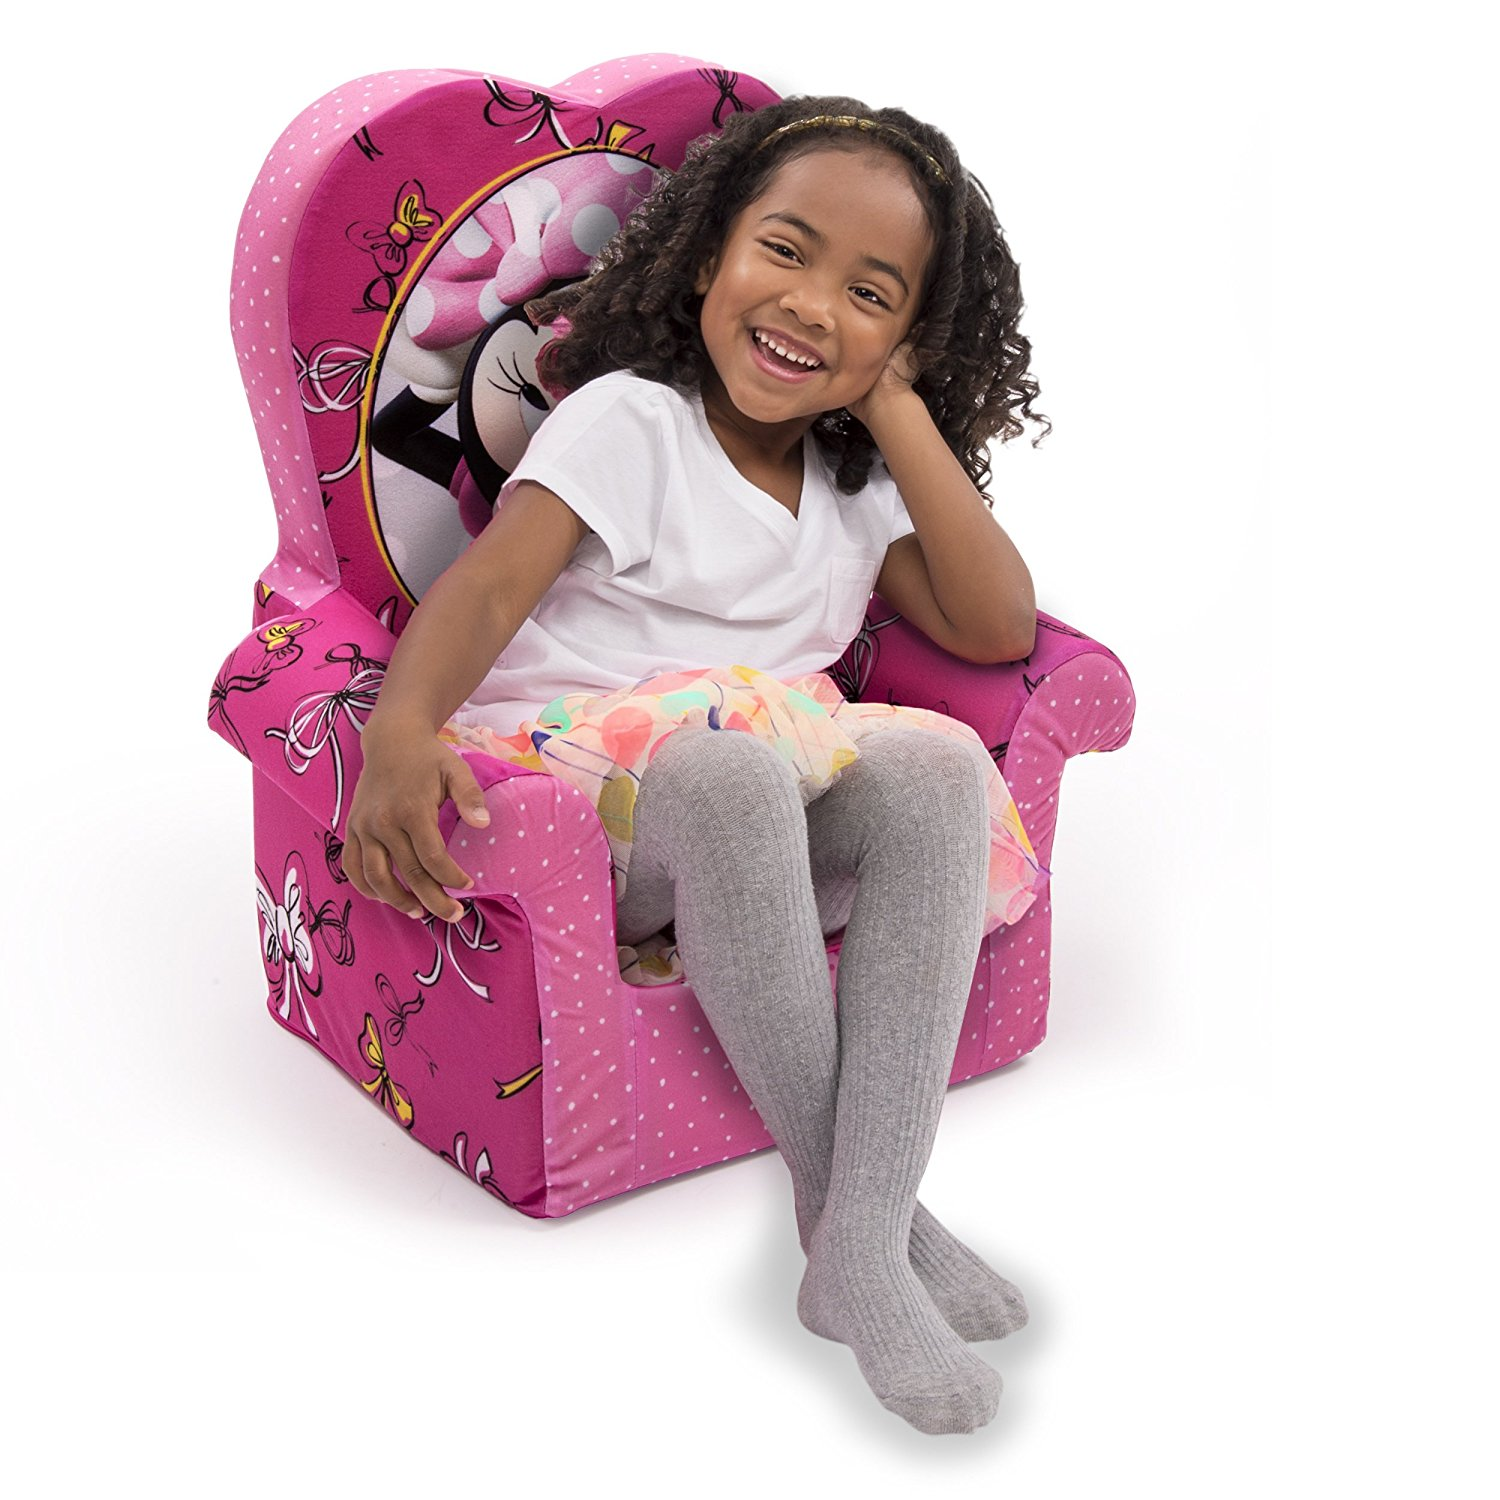 Marshmallow Chairs Toddlers. Amazon Com Marshmallow